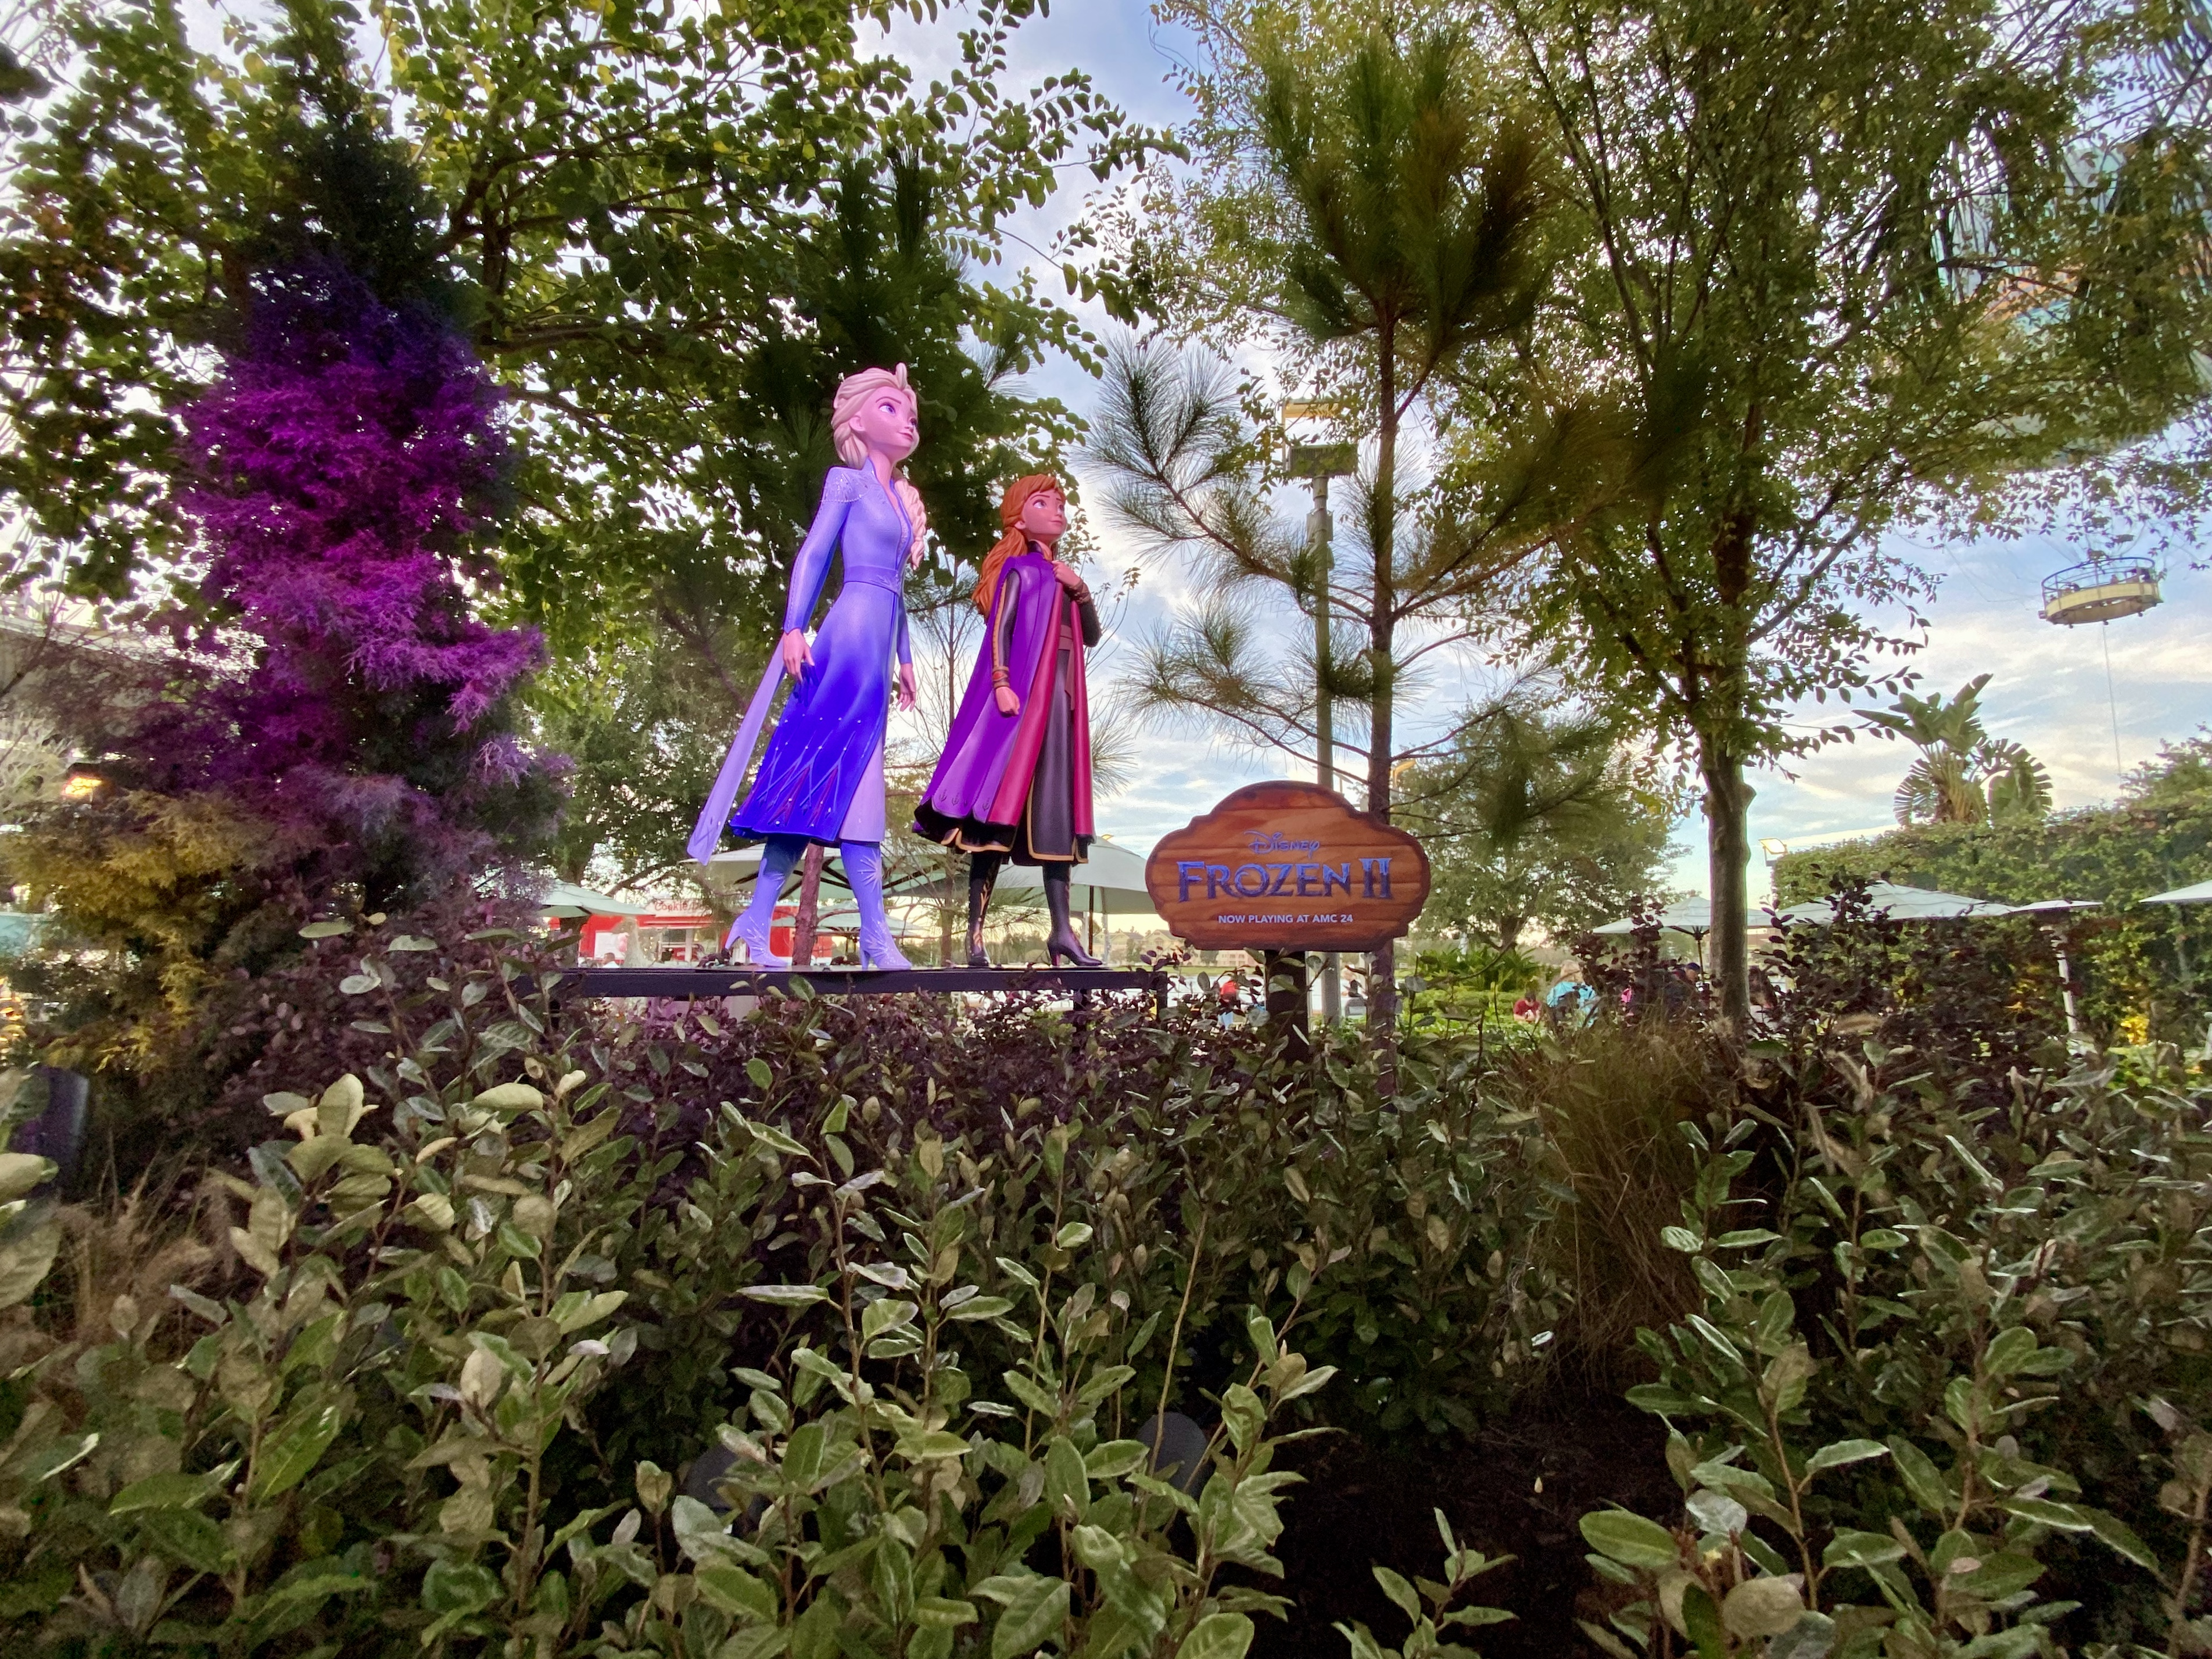 Frozen 2 figures at Disney Springs